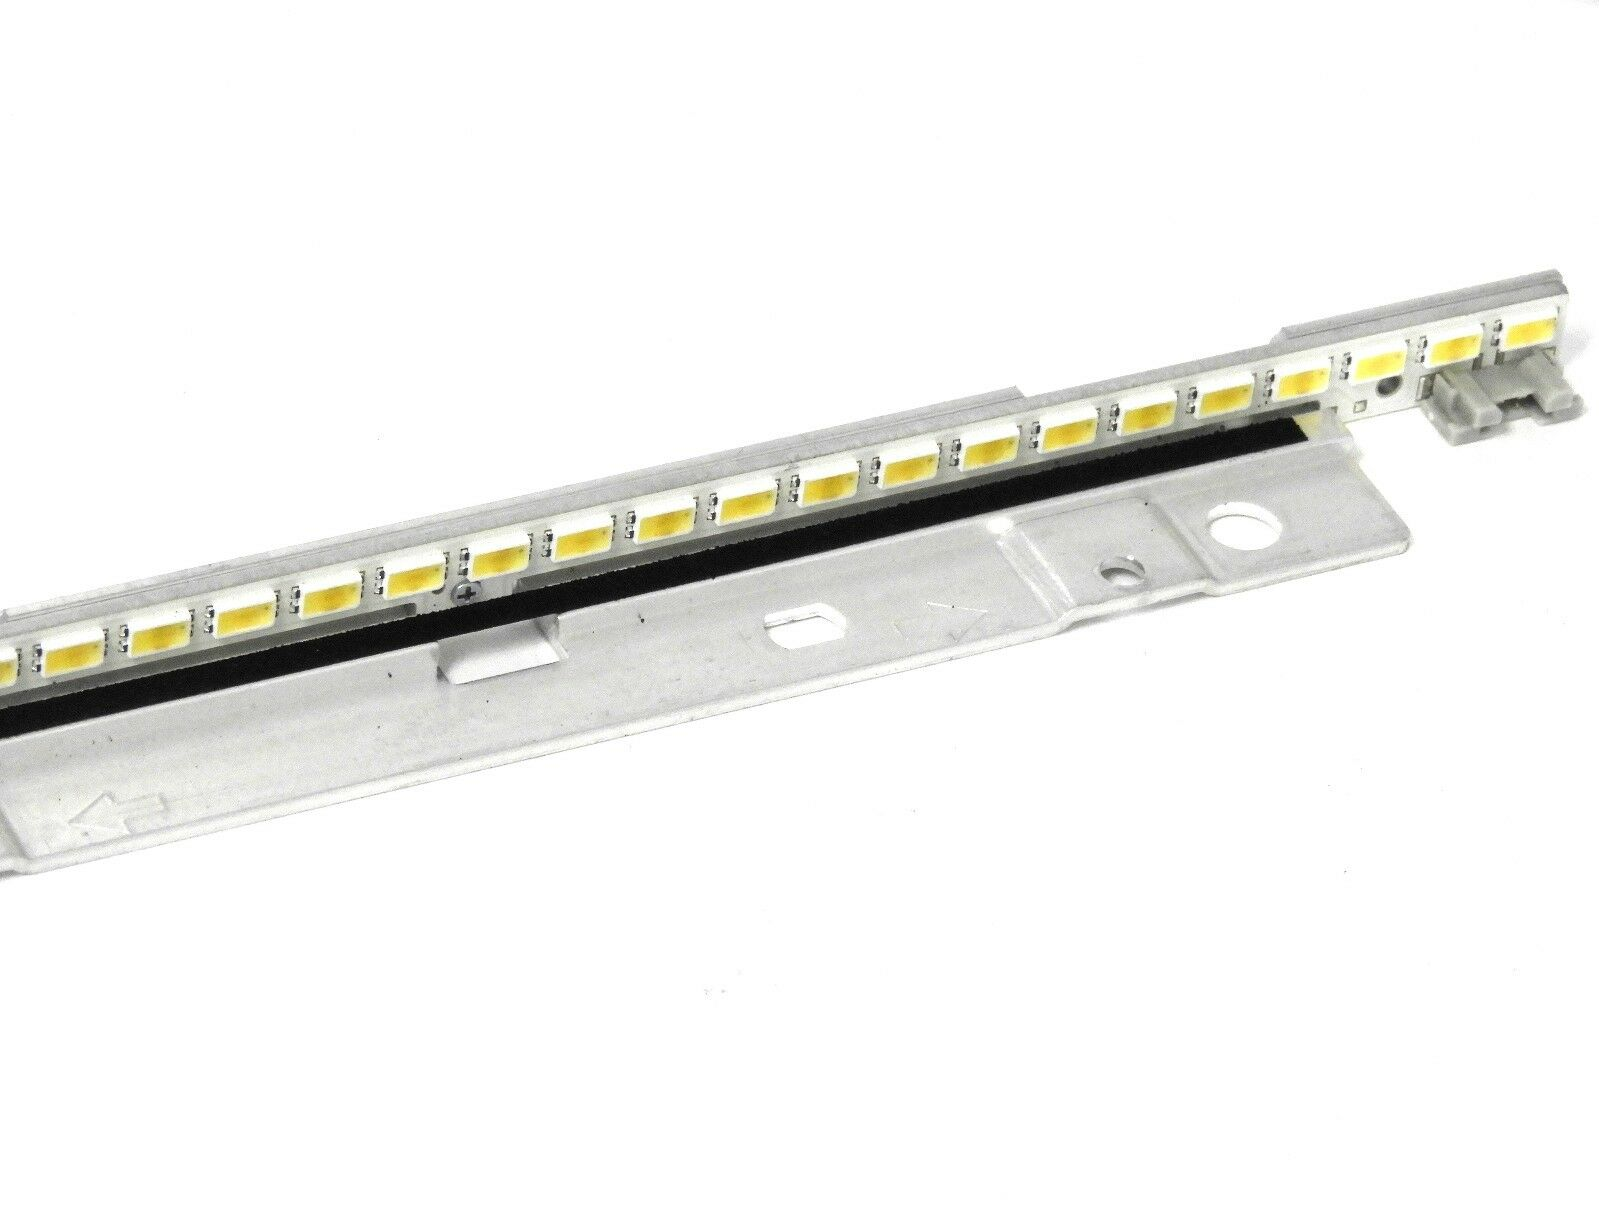 Samsung Un46d6000sf Led Backlight Strips Right Left 2011svs46 12 White Smd Car Boat Light Panel Circuit Board Ebay Norton Secured Powered By Verisign